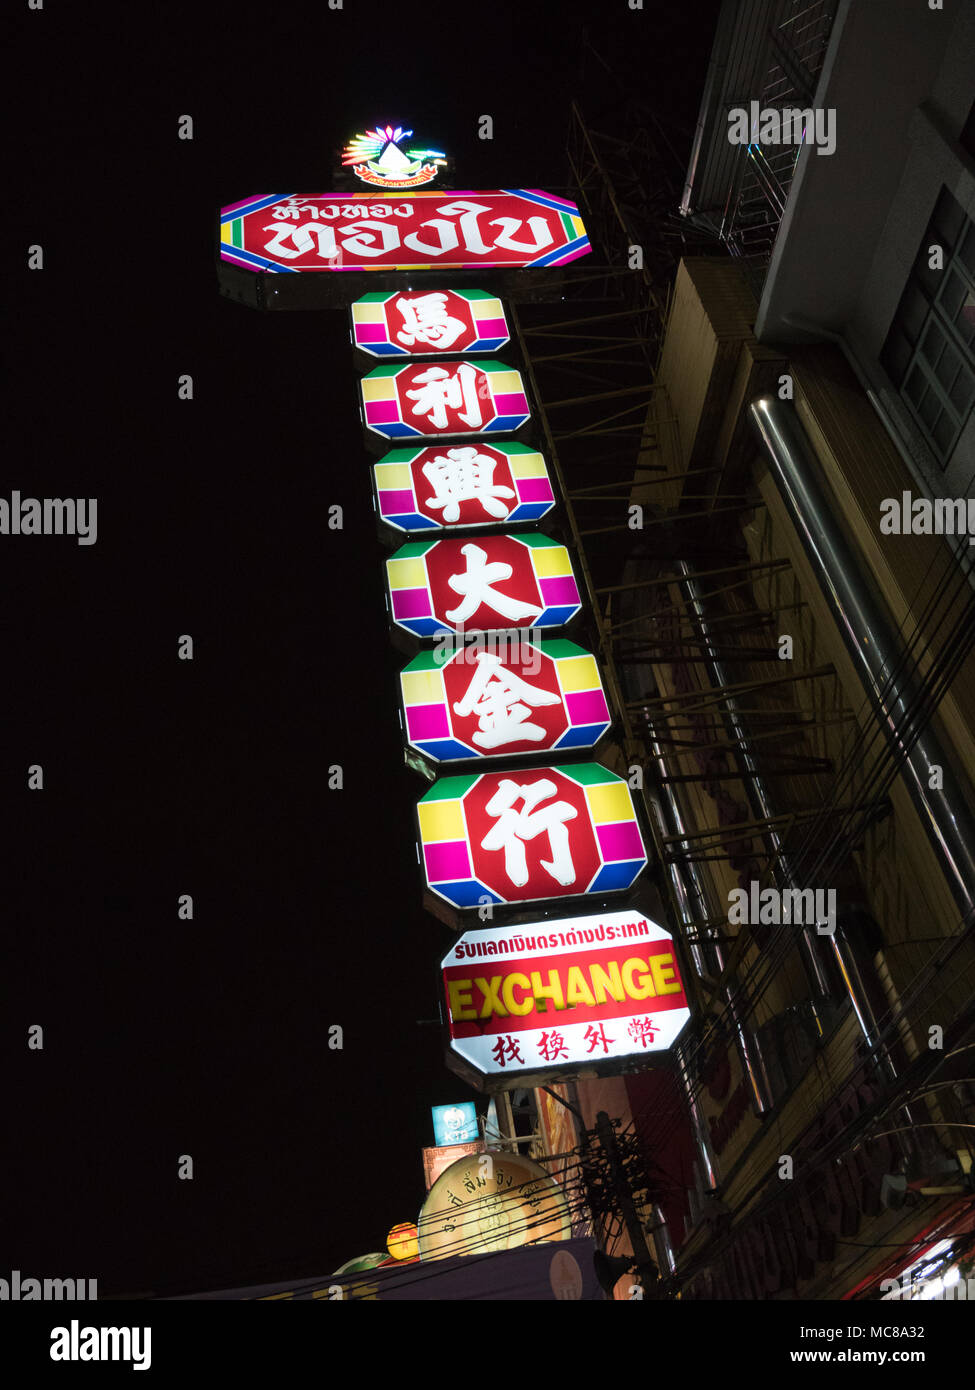 A neon sign on a building  in Chinatown Bangkok - Stock Image